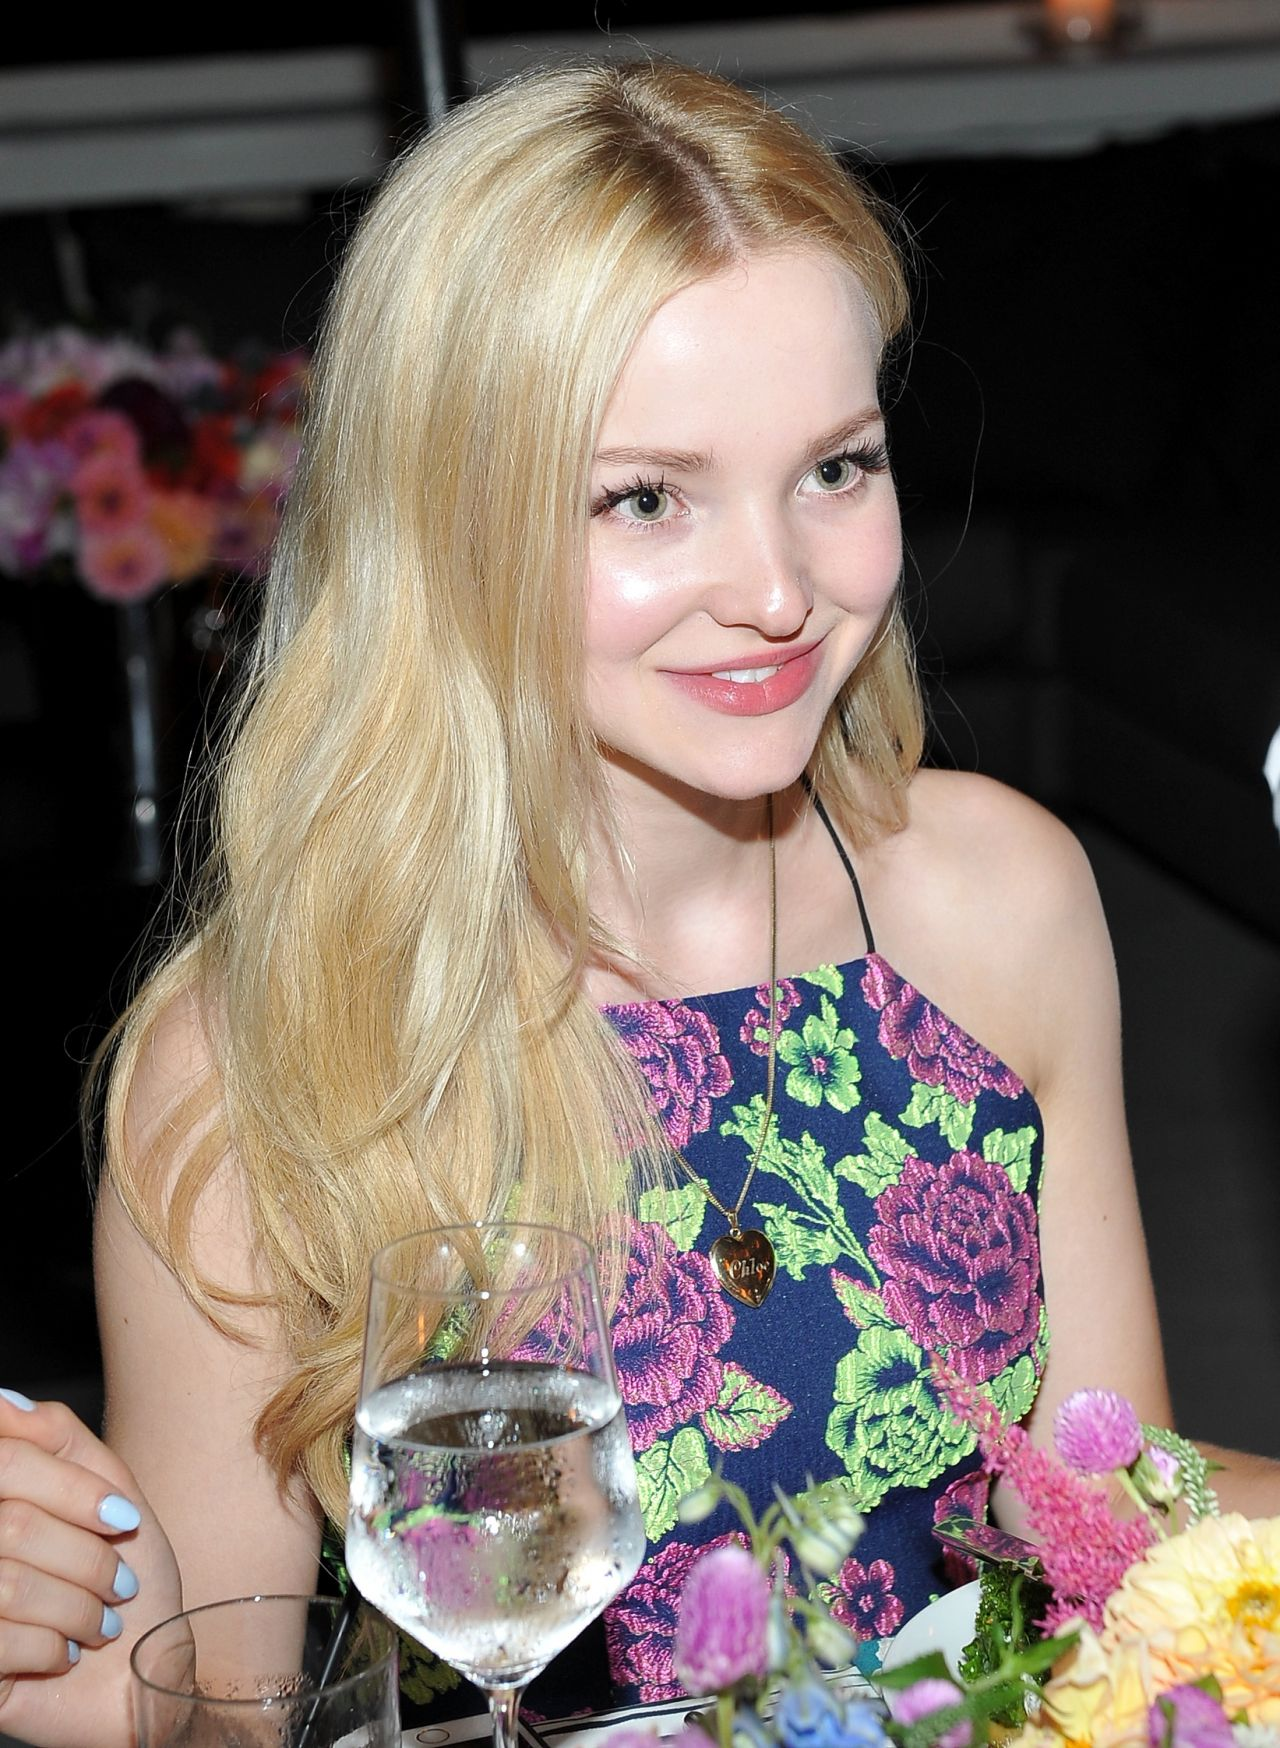 Party Chic Dove Cameron - Teen Vogue Dinner Party In Los Angeles